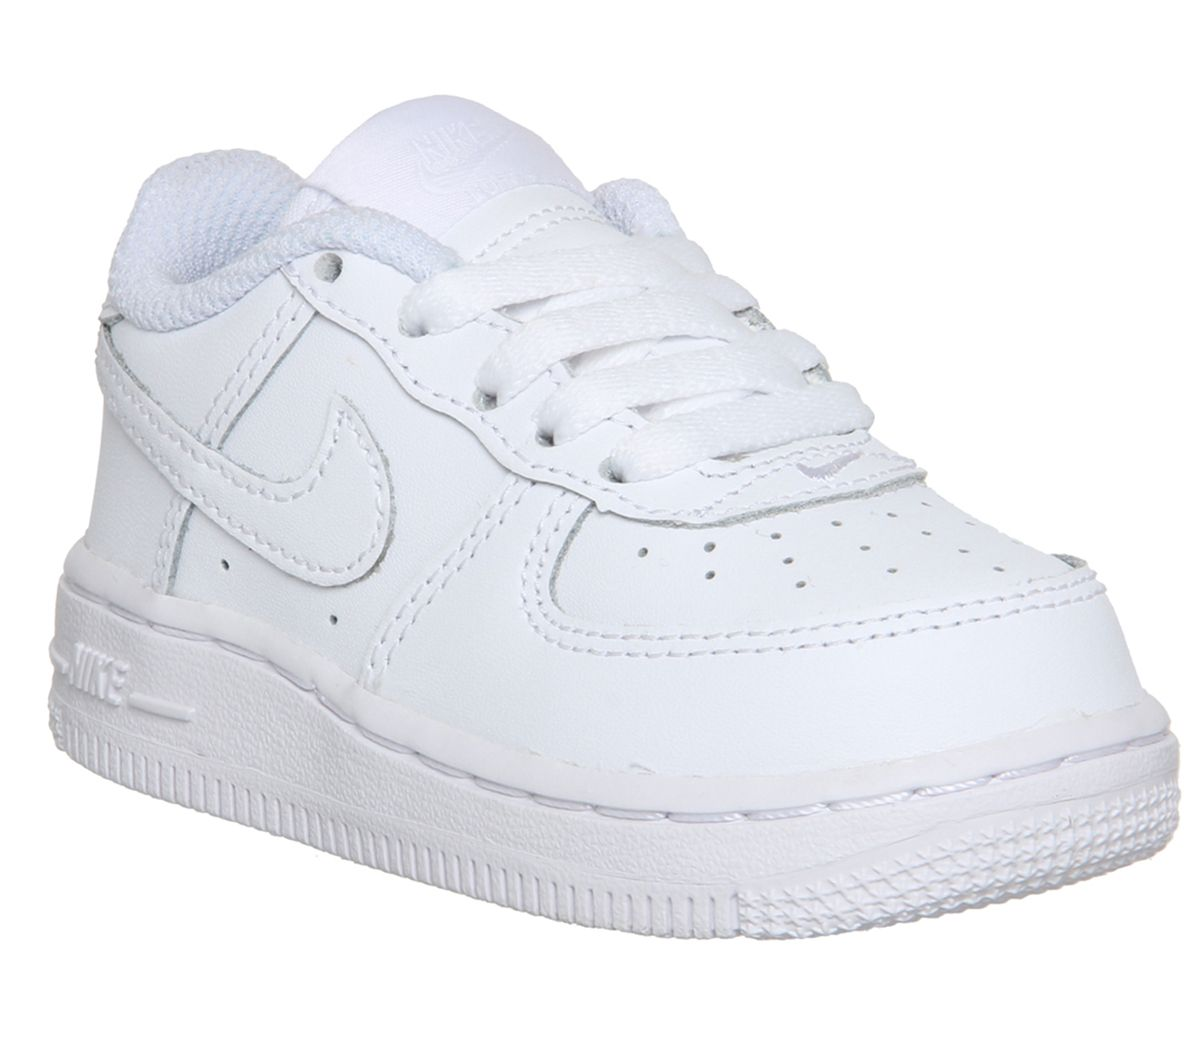 online store c00ad 57f8b Nike Air Force 1 Infant White - Unisex